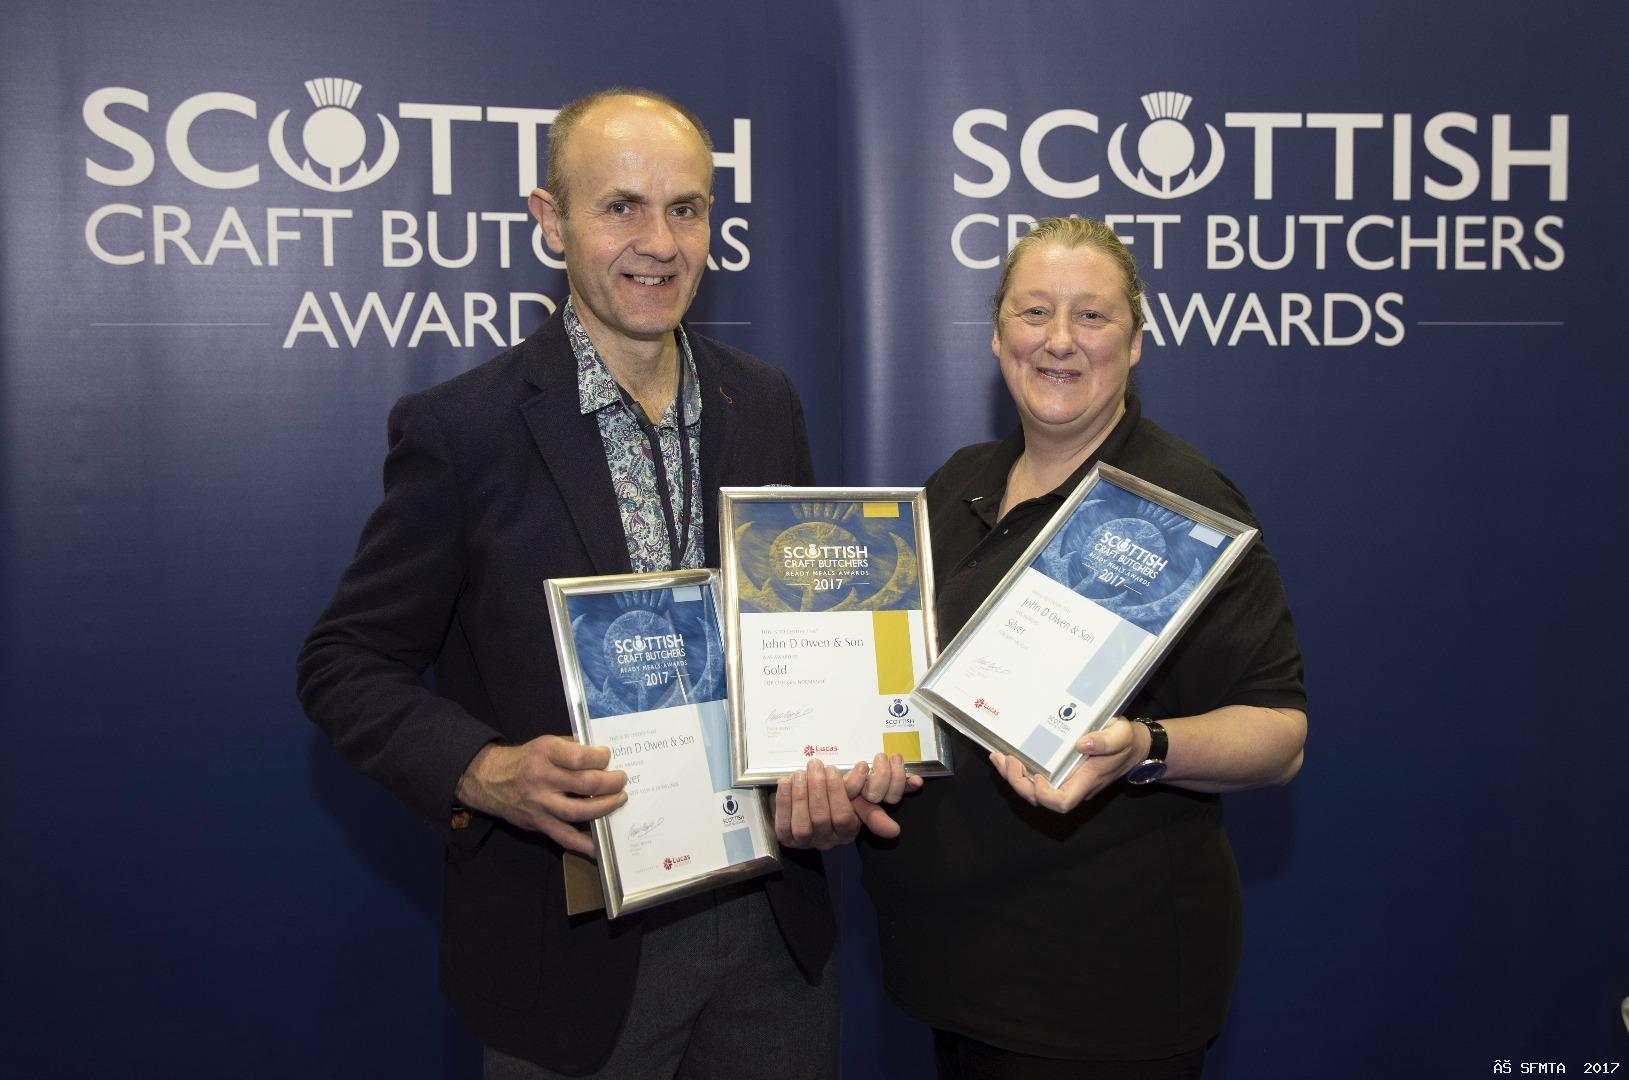 Kenny Owen of John D Owen & Son, traditional butchers of Newton Stewart, being presented with his Gold and Silver Awards for Ready Meals by Judith Johnstone of Lucas Ingredients, sponsor of the 2017 Ready Meals Product Evaluation